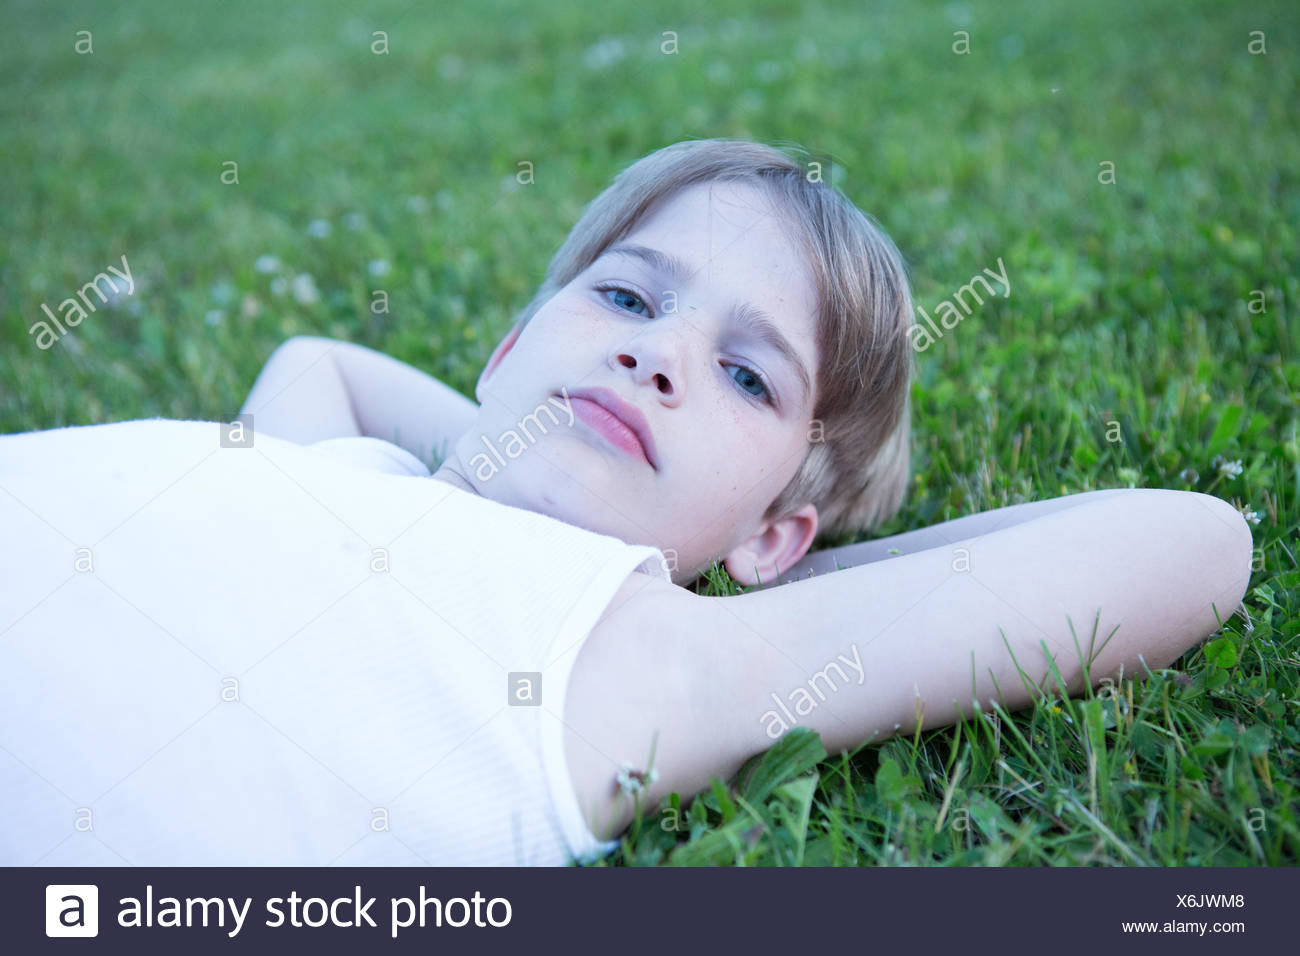 USA, Pennsylvania, Lancaster County, Lancaster, Portrait of boy laying on grass - Stock Image